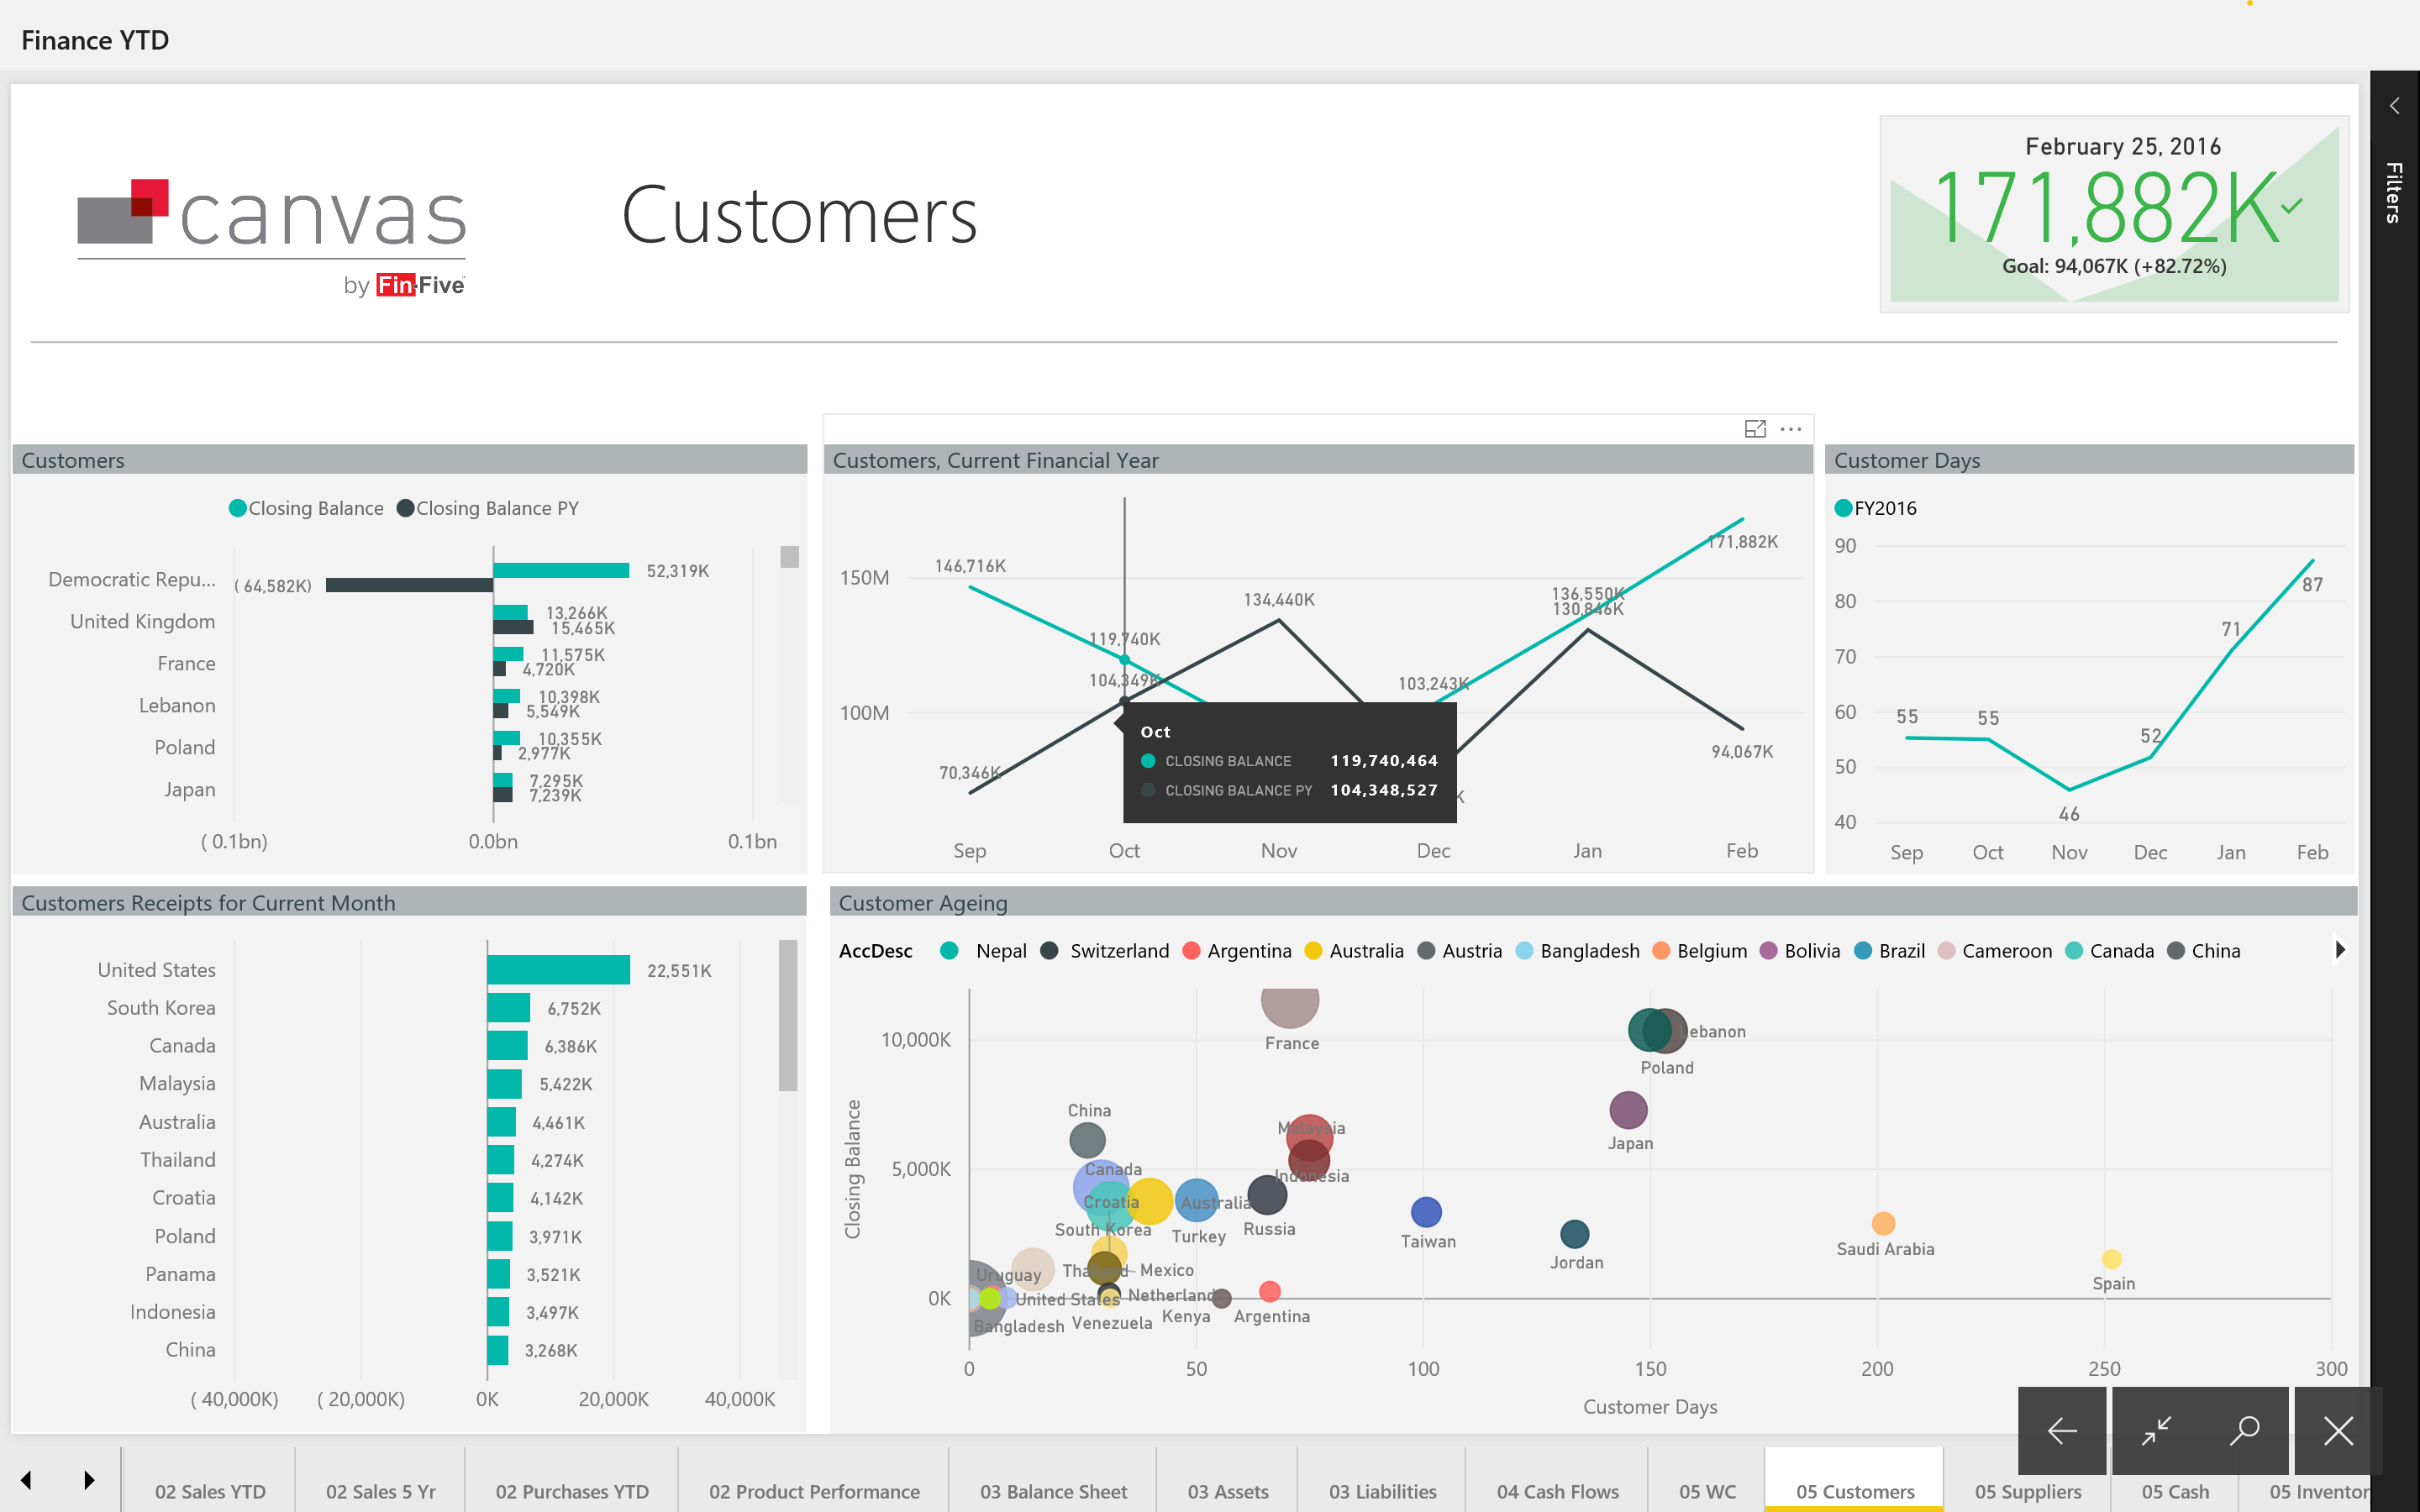 Data Stories Gallery - Page 4 - Microsoft Power BI Community